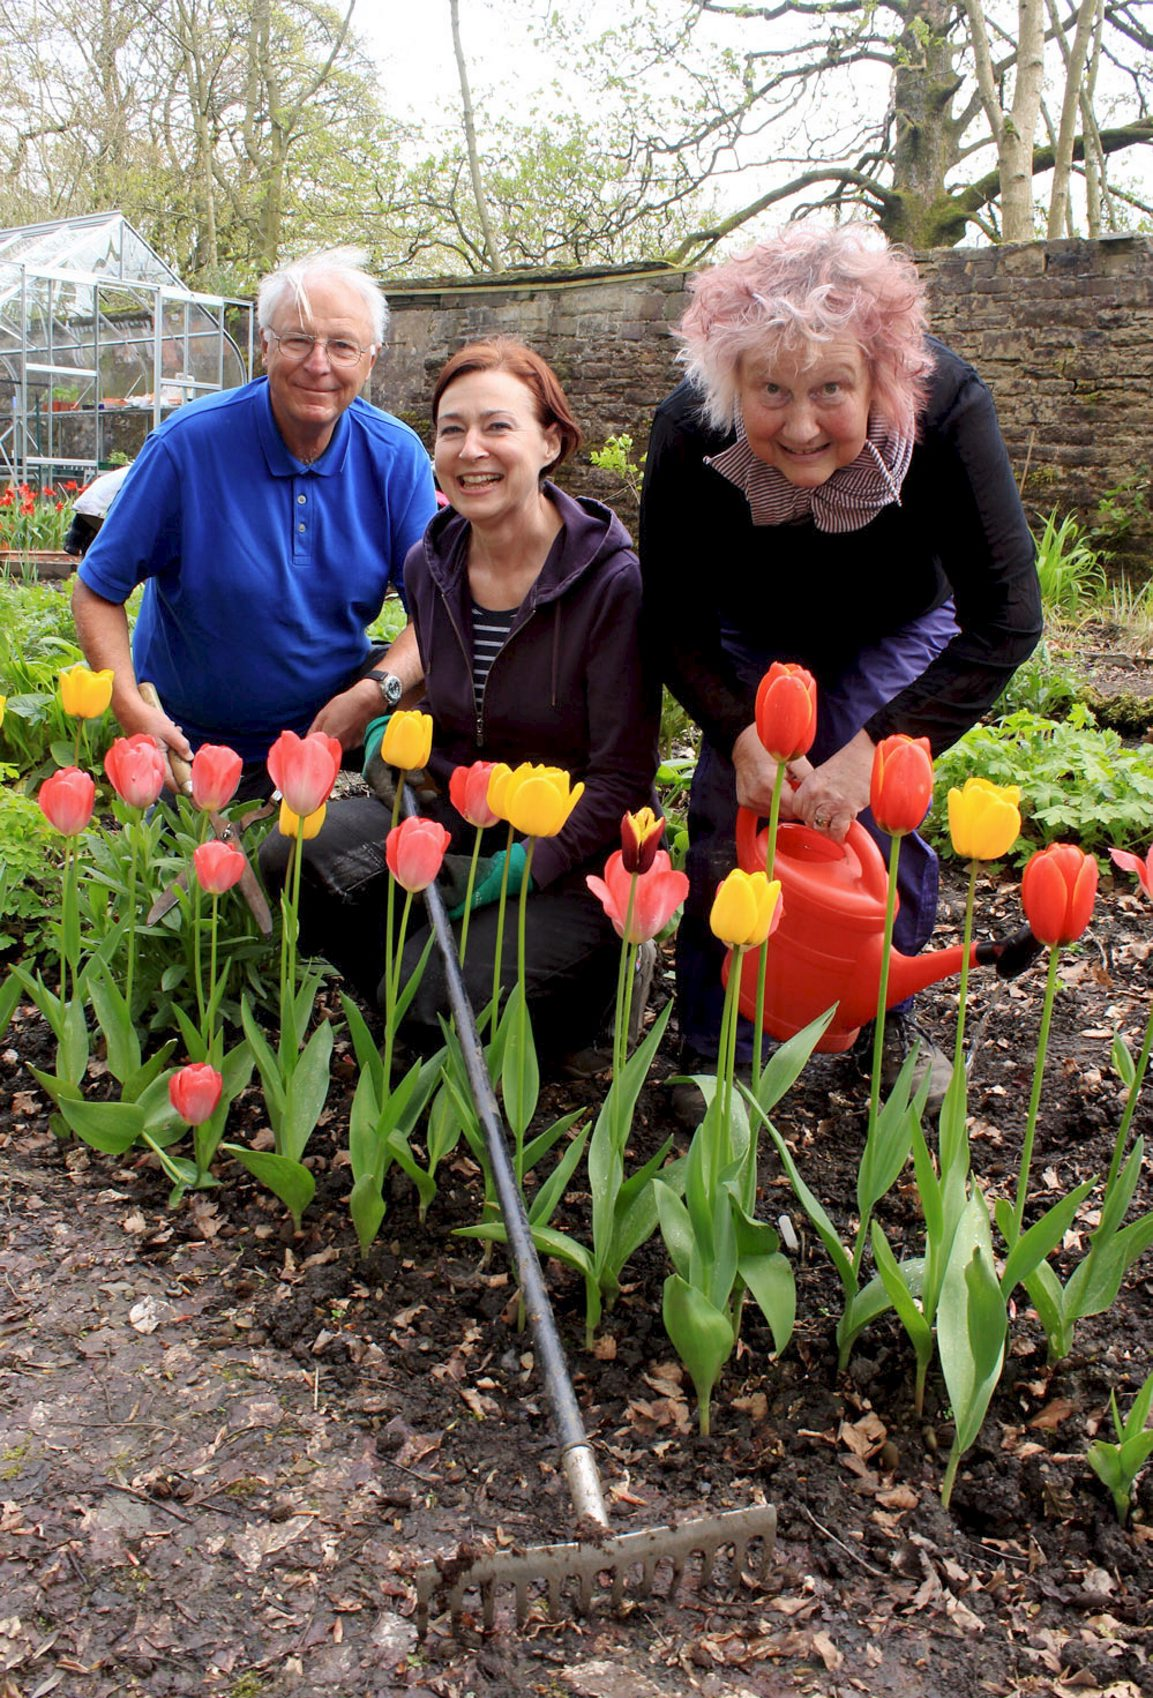 Gardeners plant flowers and vegetables in Turton Tower kitchen garden